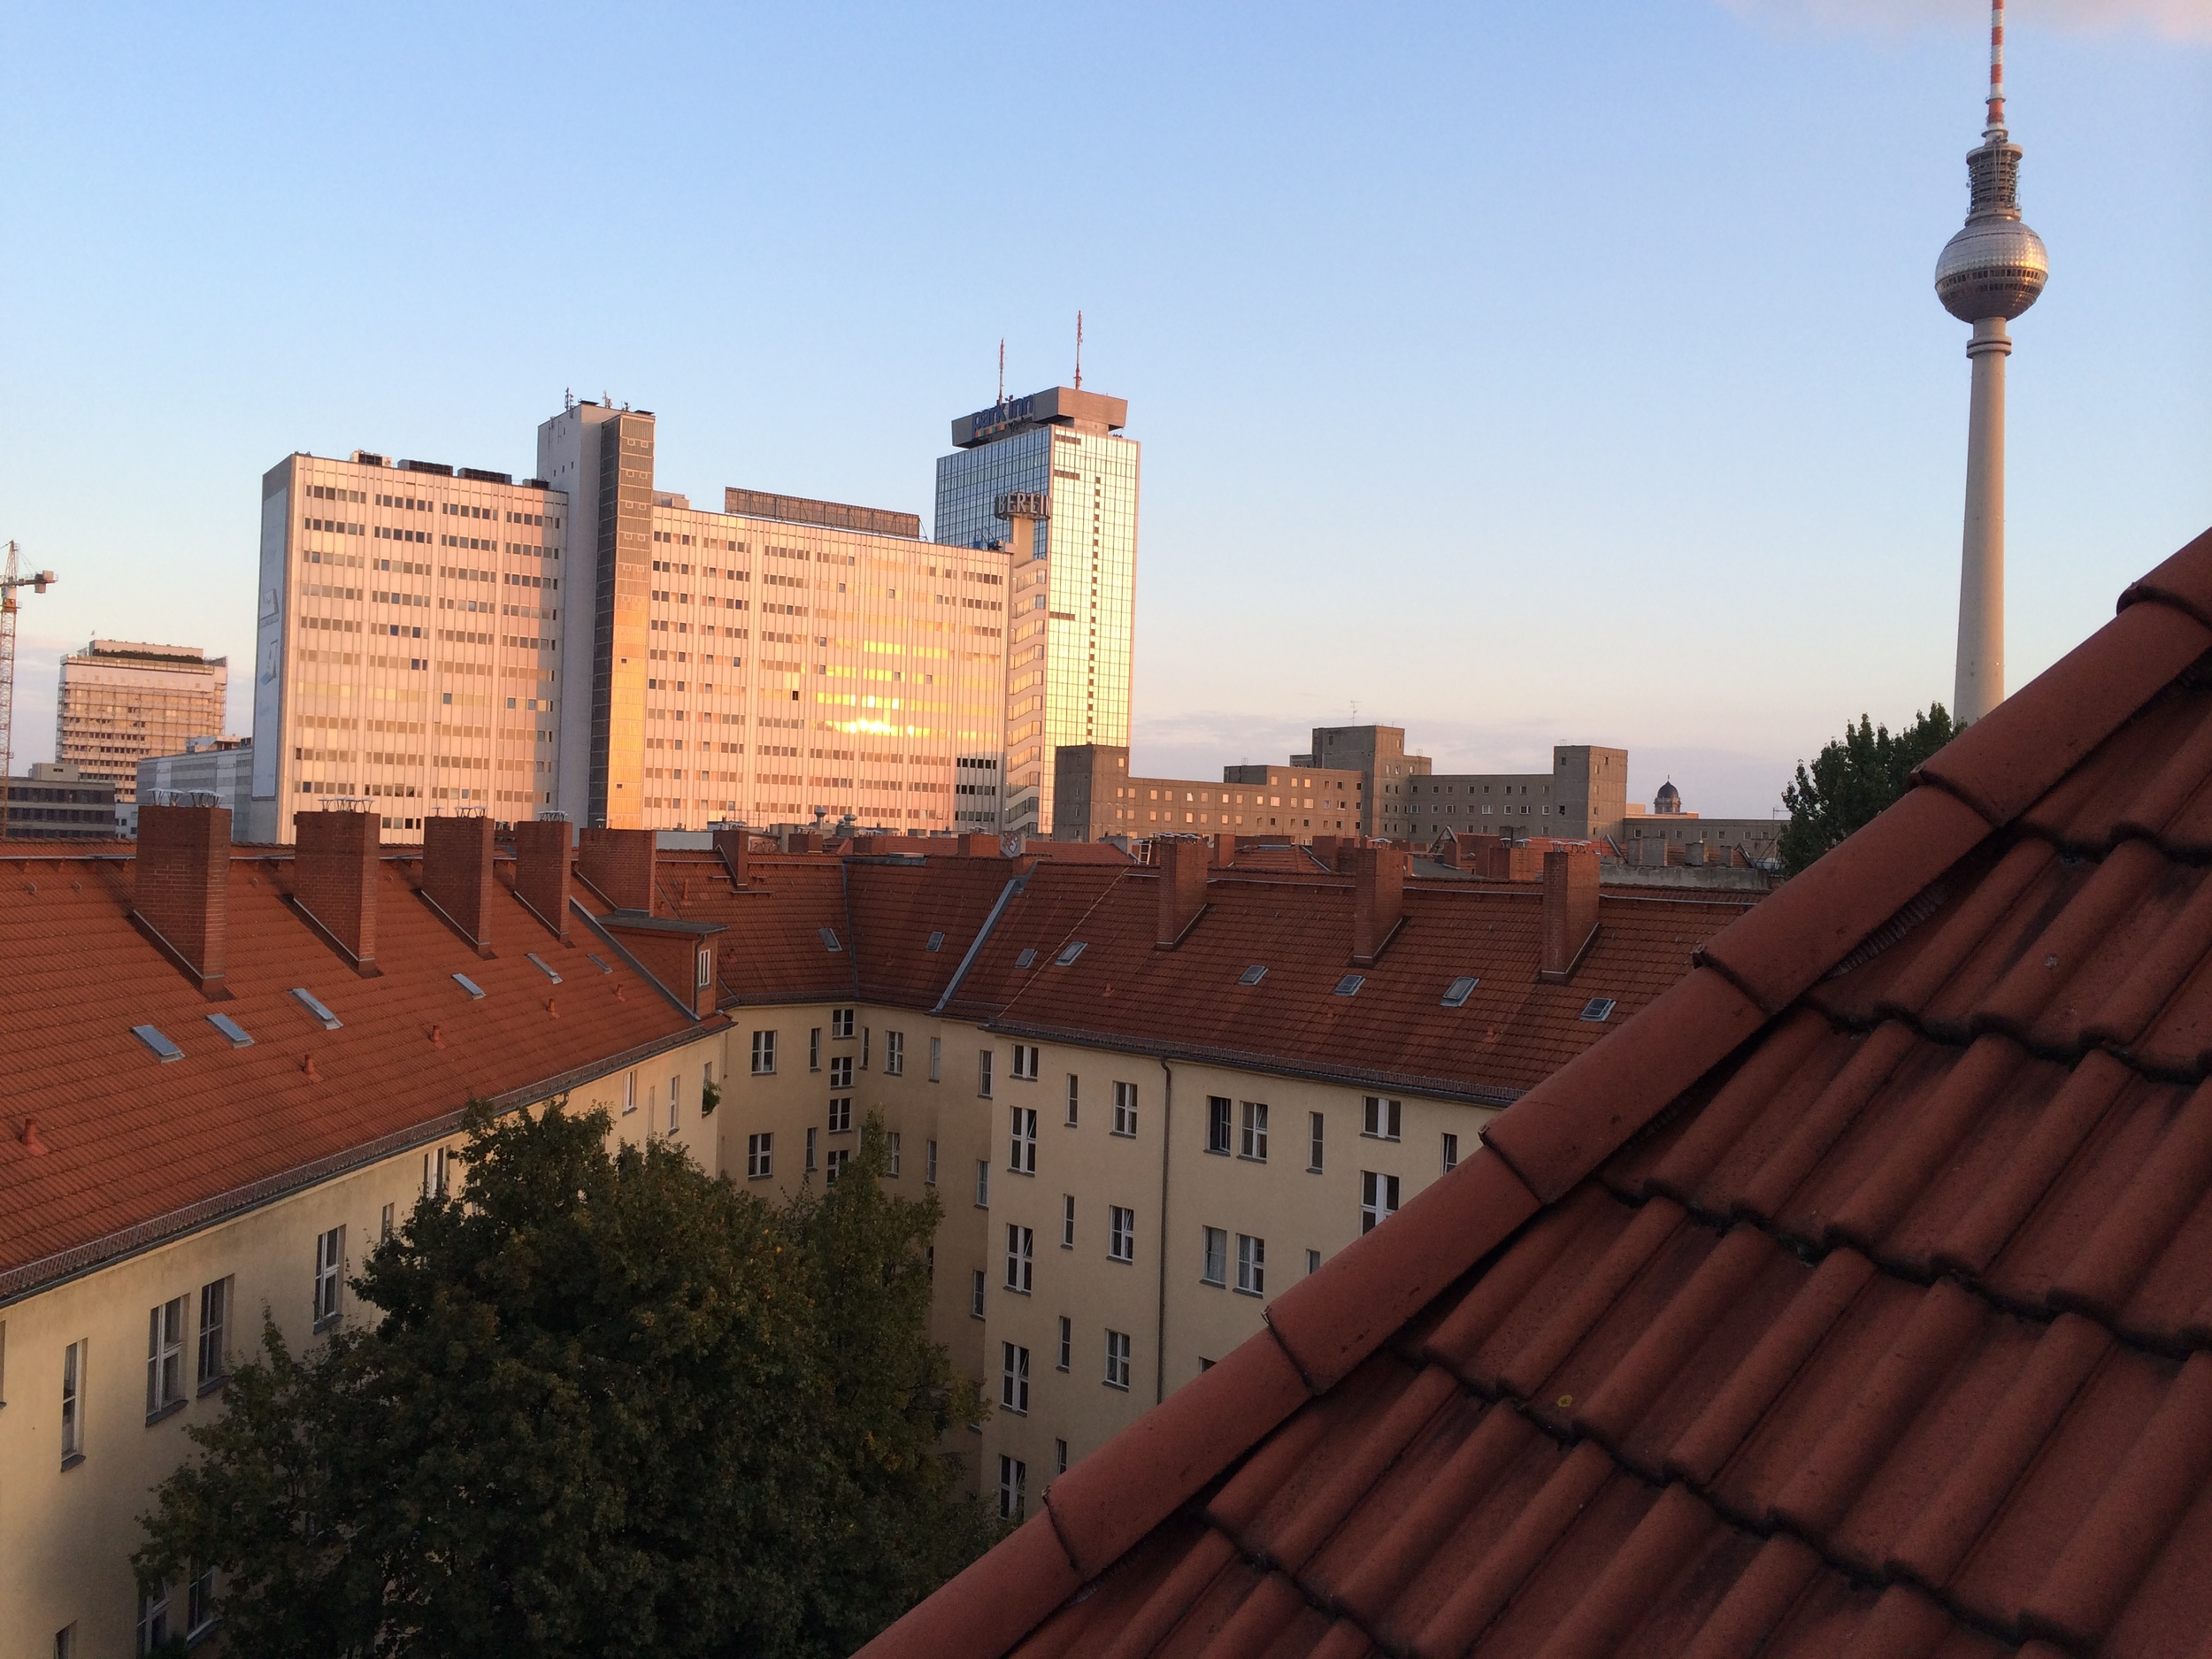 The view from Shawn and Paulie's hostel room in Berlin (thanks for Max for the hook up)